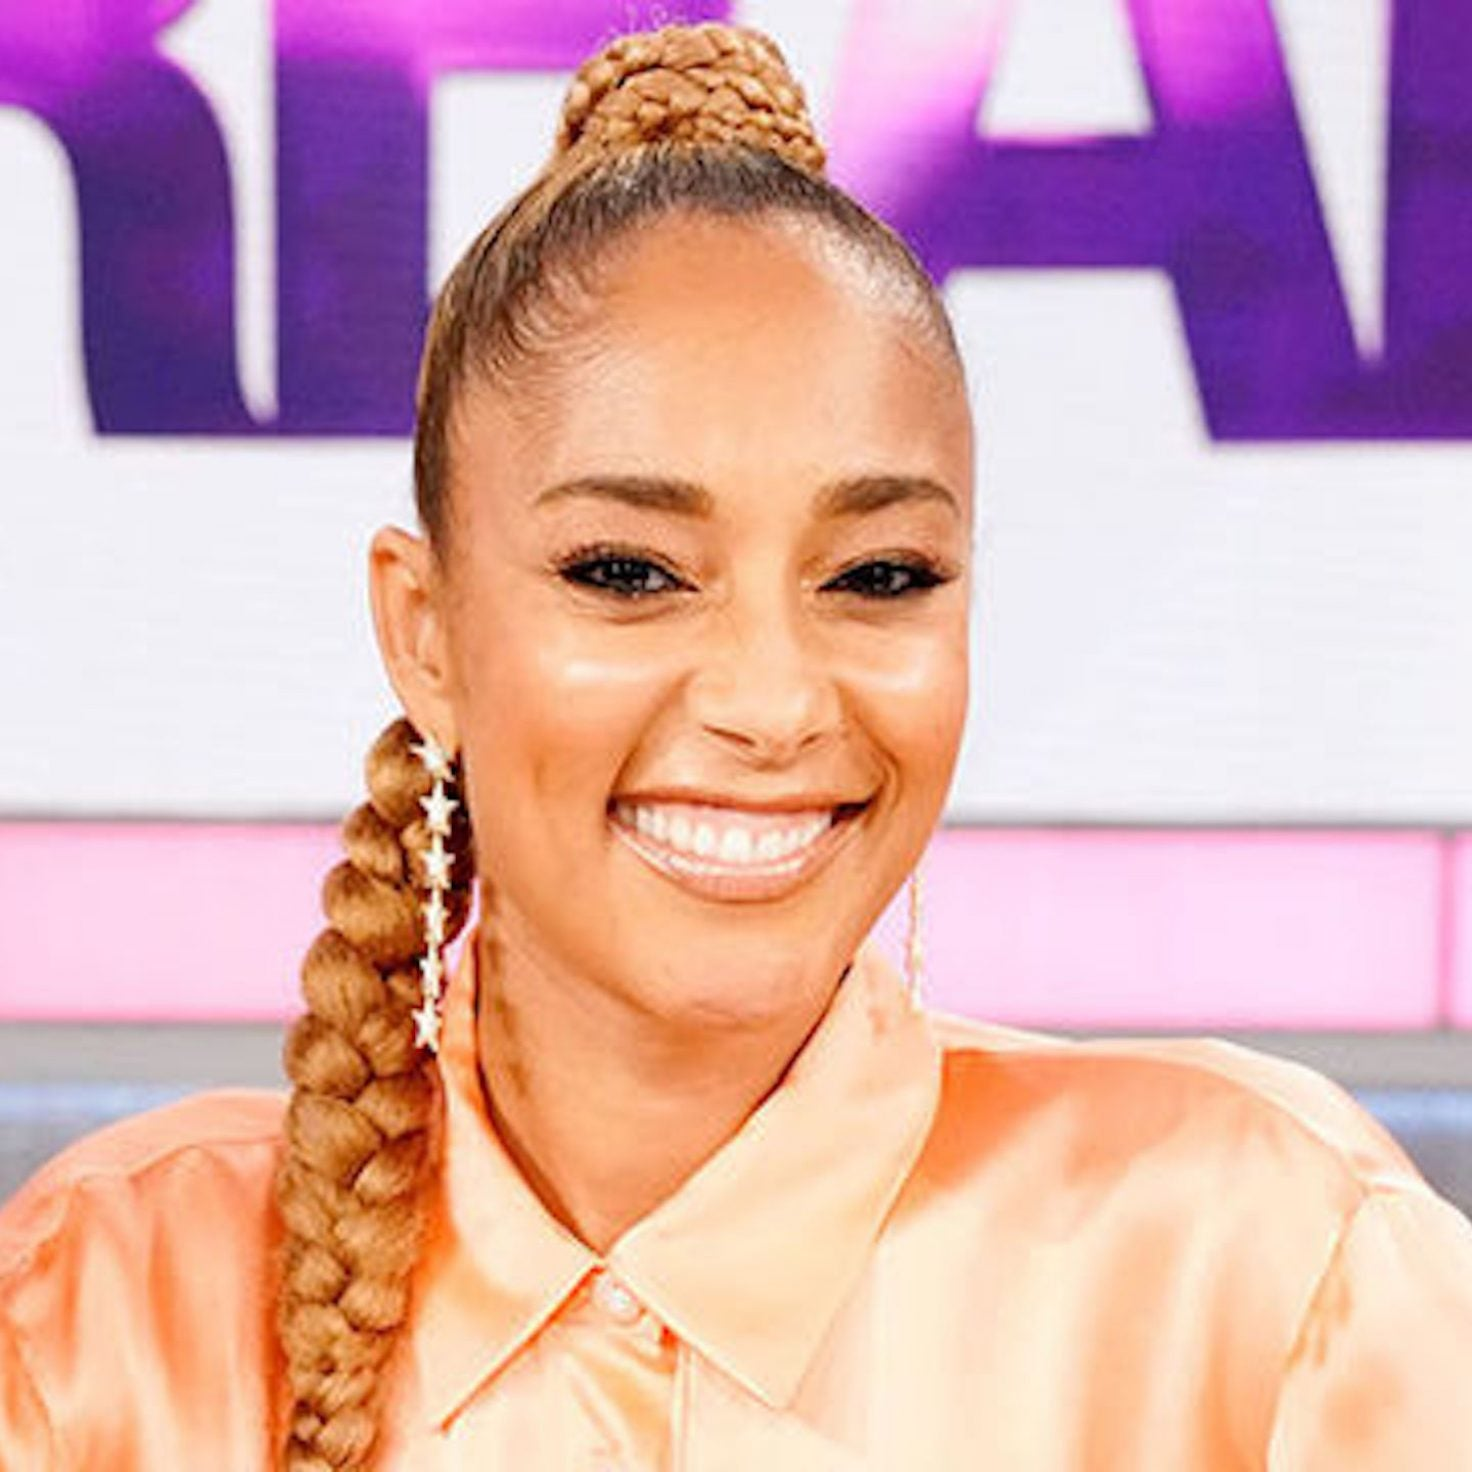 Amanda Seales Leaves 'The Real' After 6 Months, Hints At Lack Of Black Executives